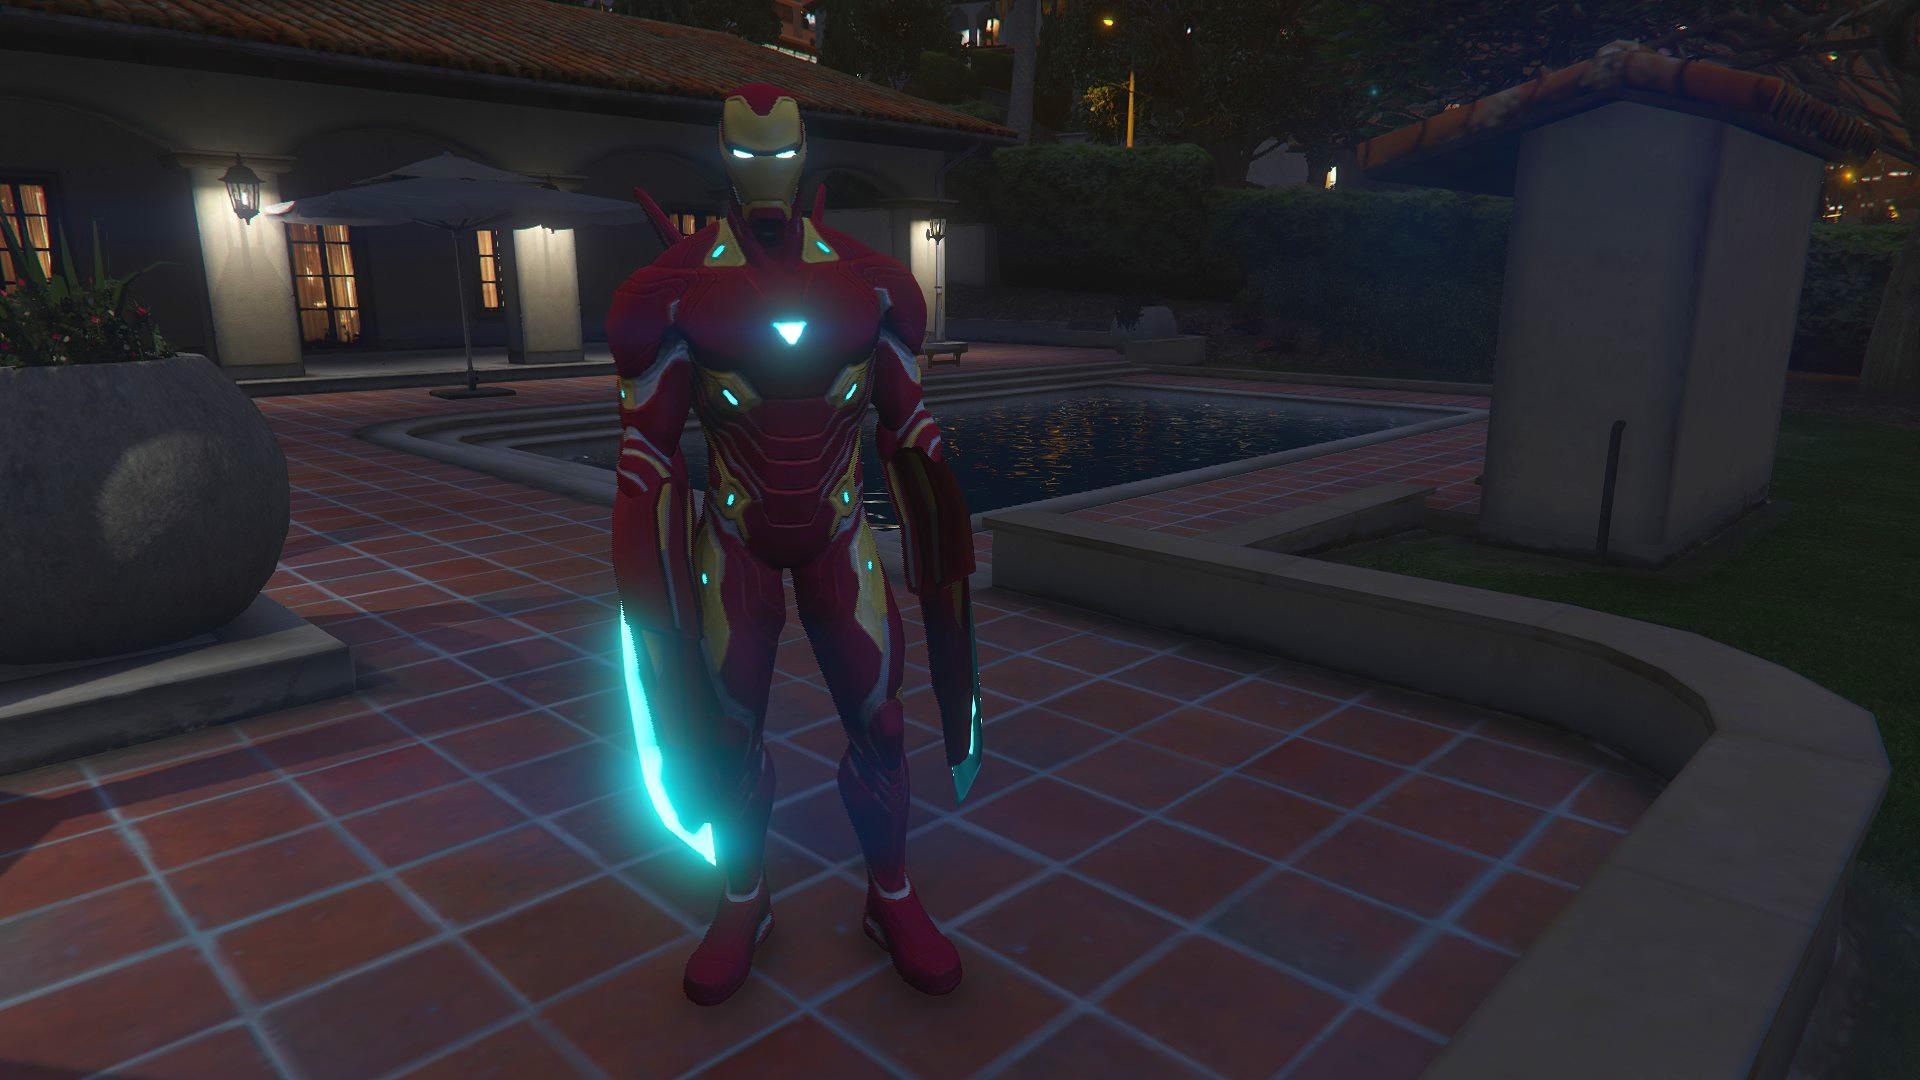 Gta 5 Cheats Ps4 Nederlands Iron Man Mk50 Mcoc Version [add-on Ped] - Gta5-mods.com